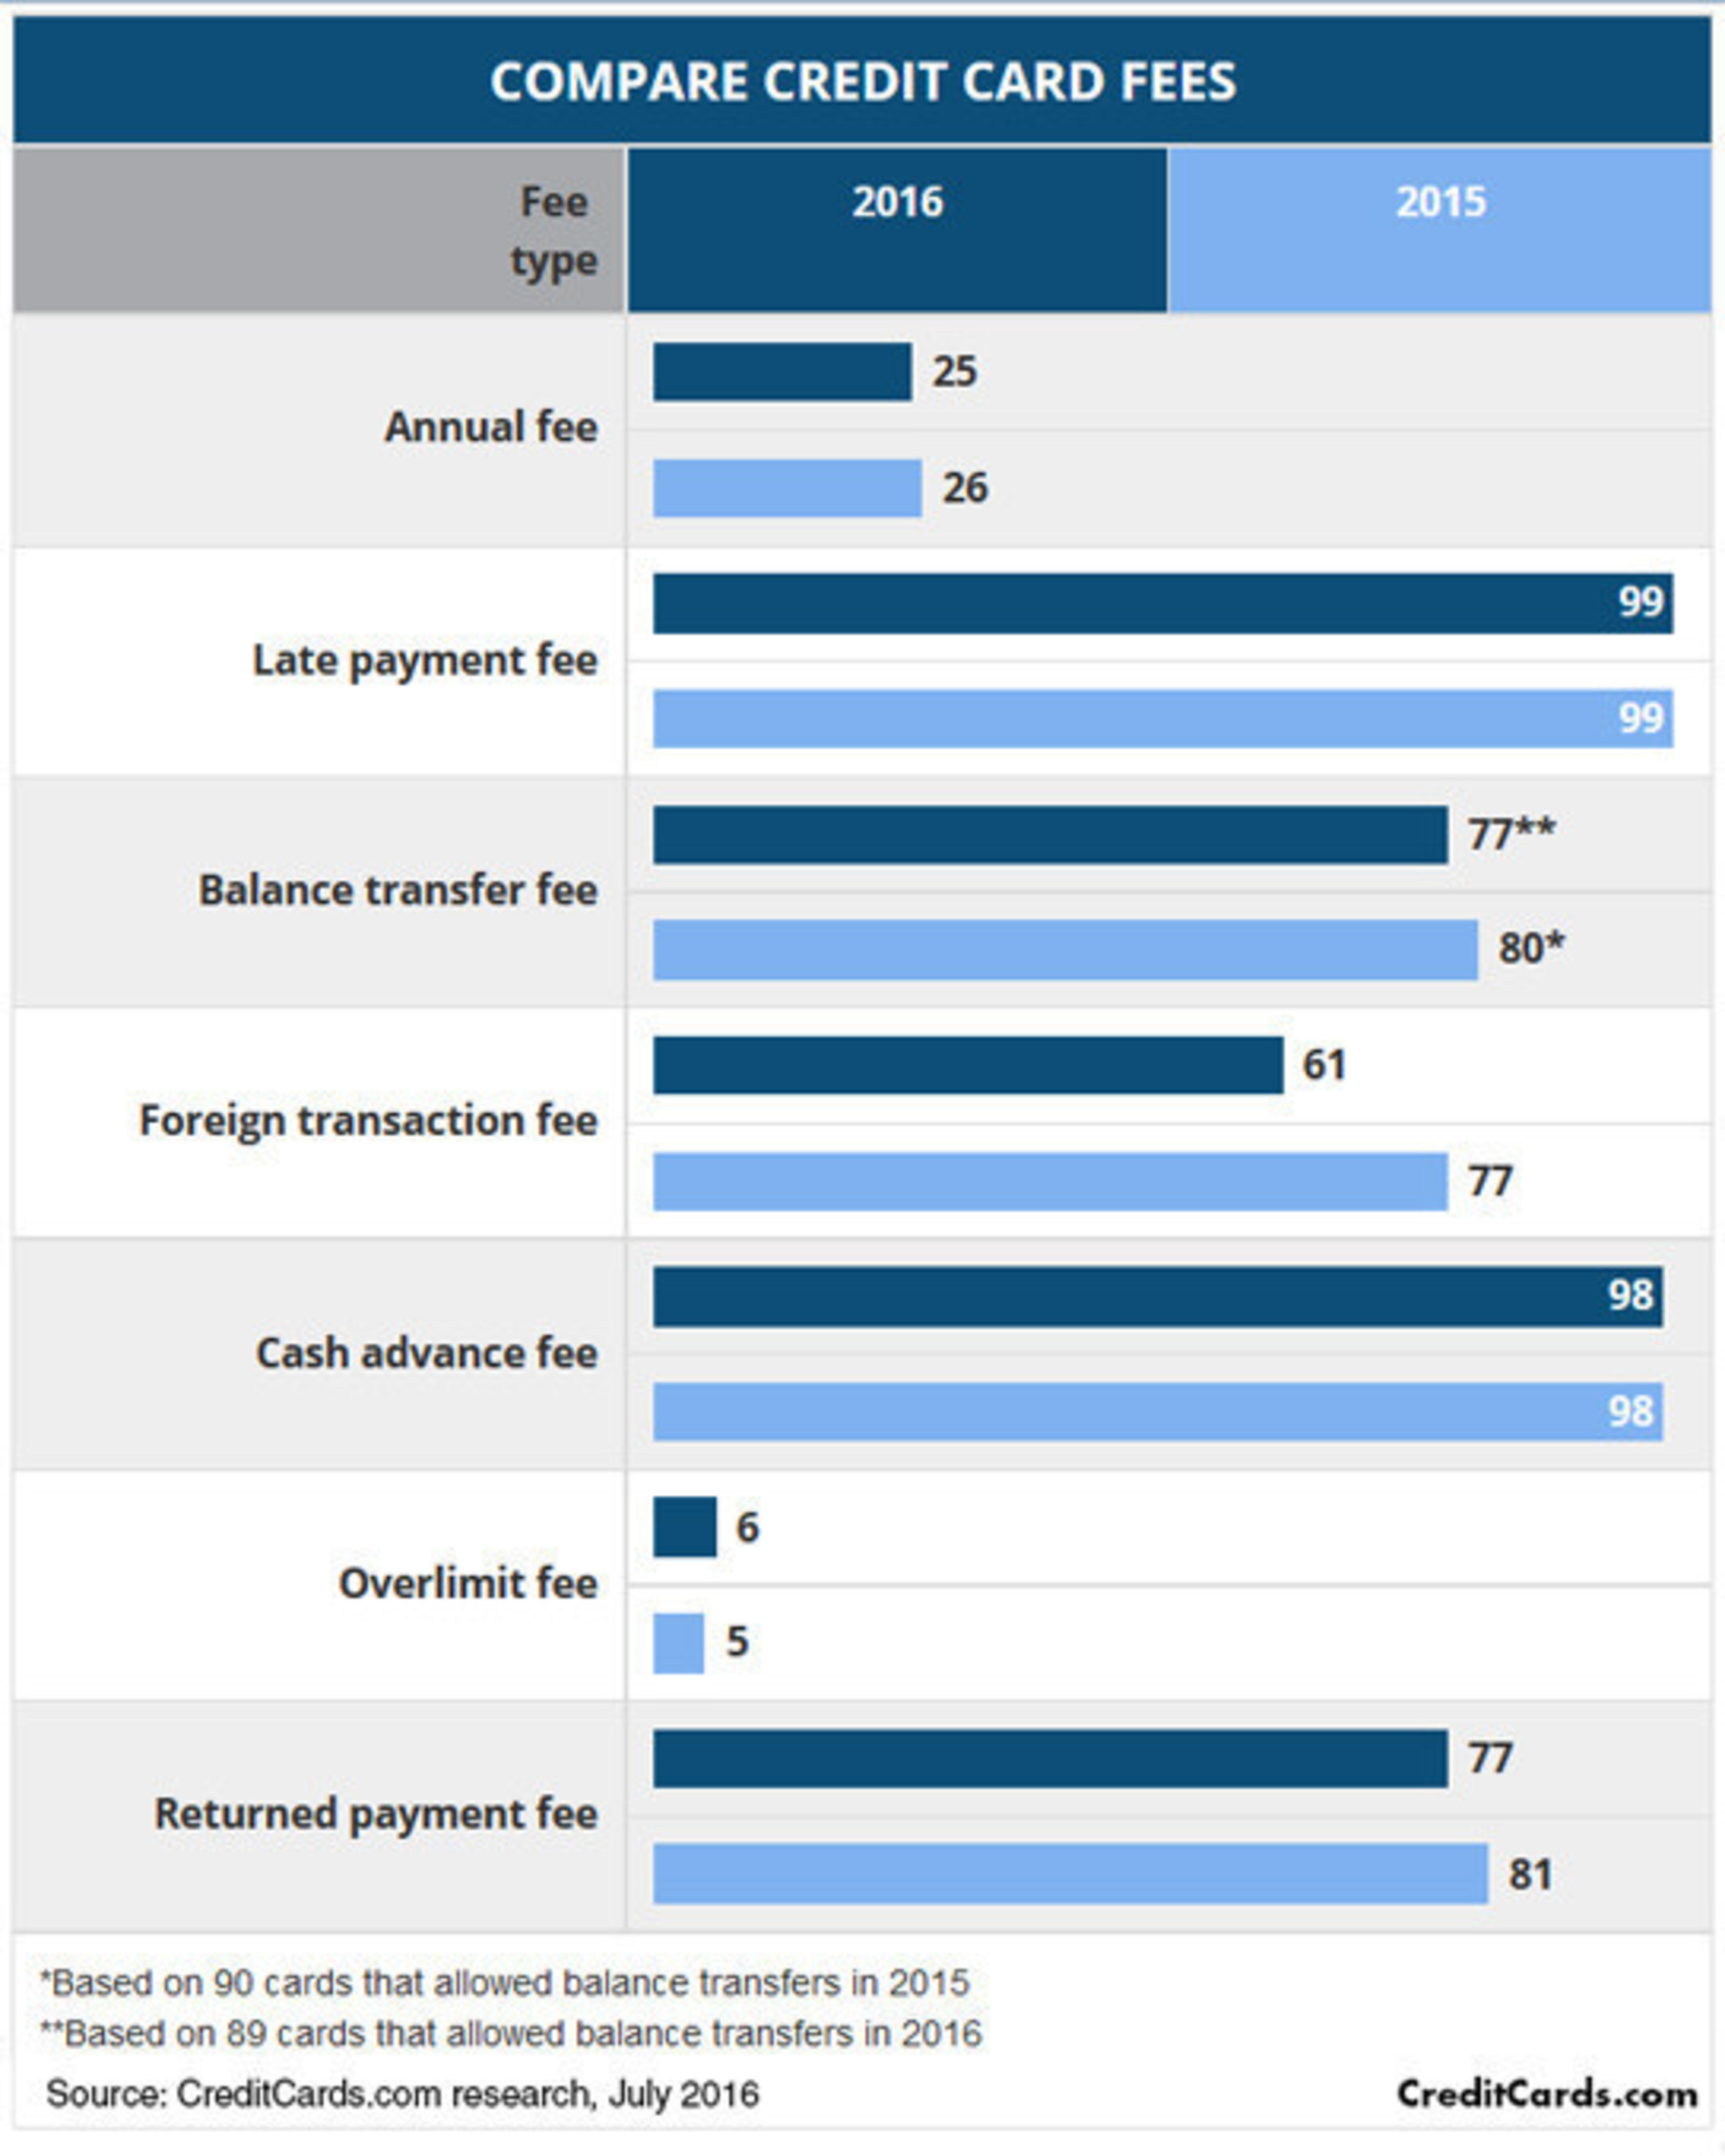 61 of 100 popular credit cards charge foreign transaction fees, down from 77 last year, according to a new CreditCards.com report. That illustrates an overall trend toward fewer fees: the 100 cards currently charge a total of 593 fees, down from 613 a year ago.